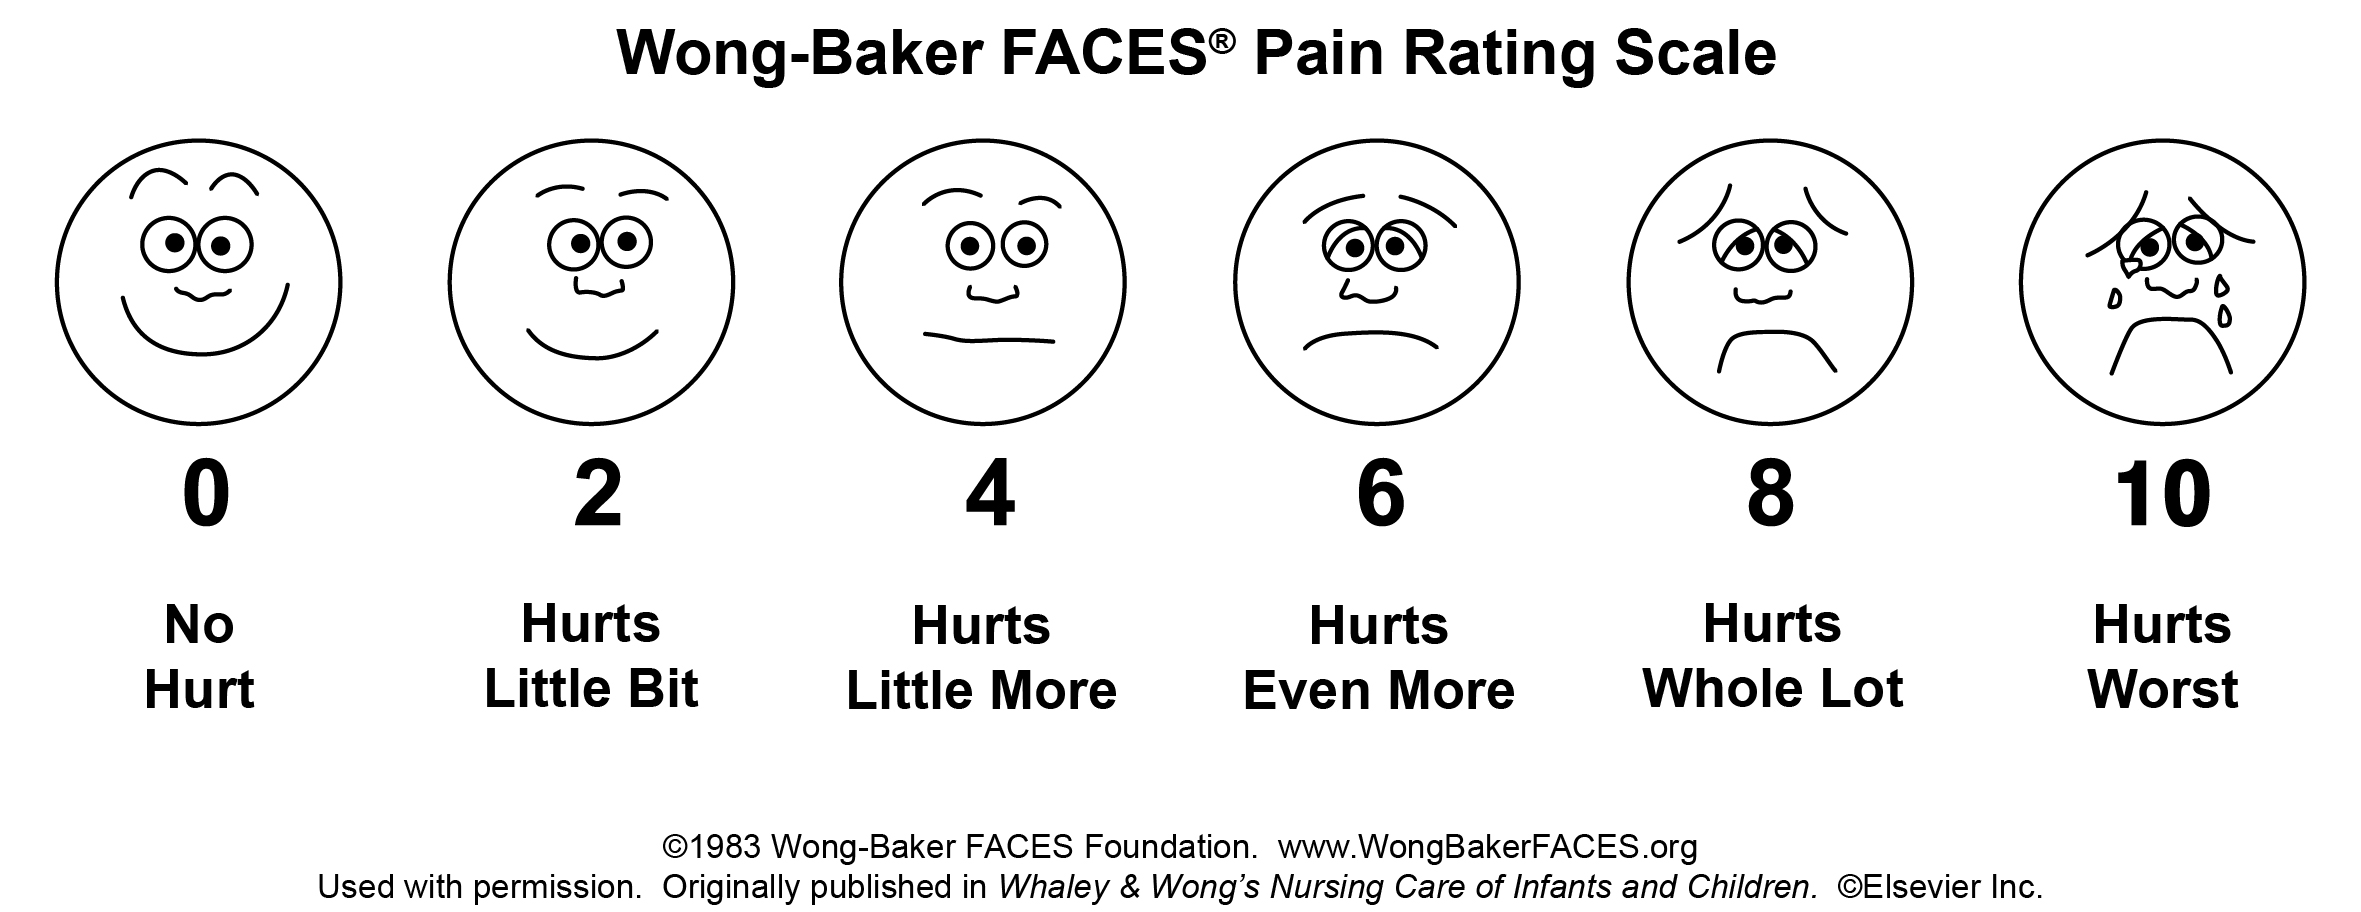 Image of Wong-Baker FACES pain rating scale